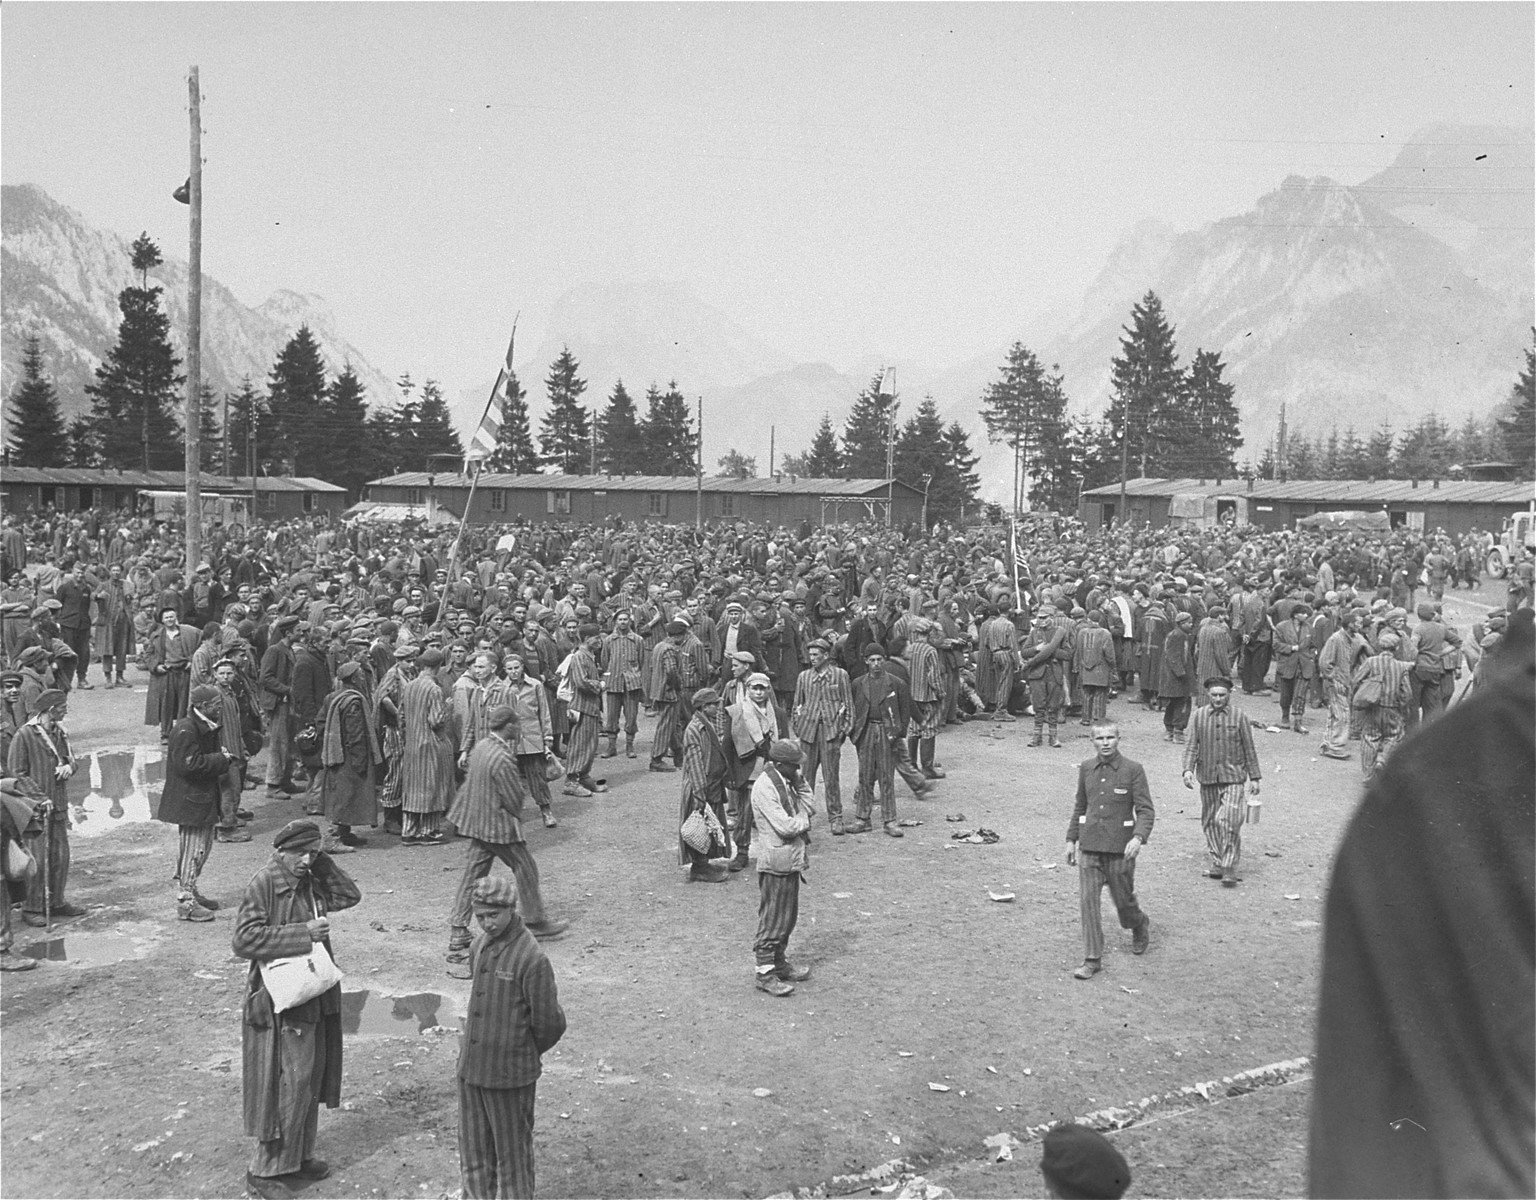 A large crowd of survivors congregates in the former roll call area of the Ebensee concentration camp.